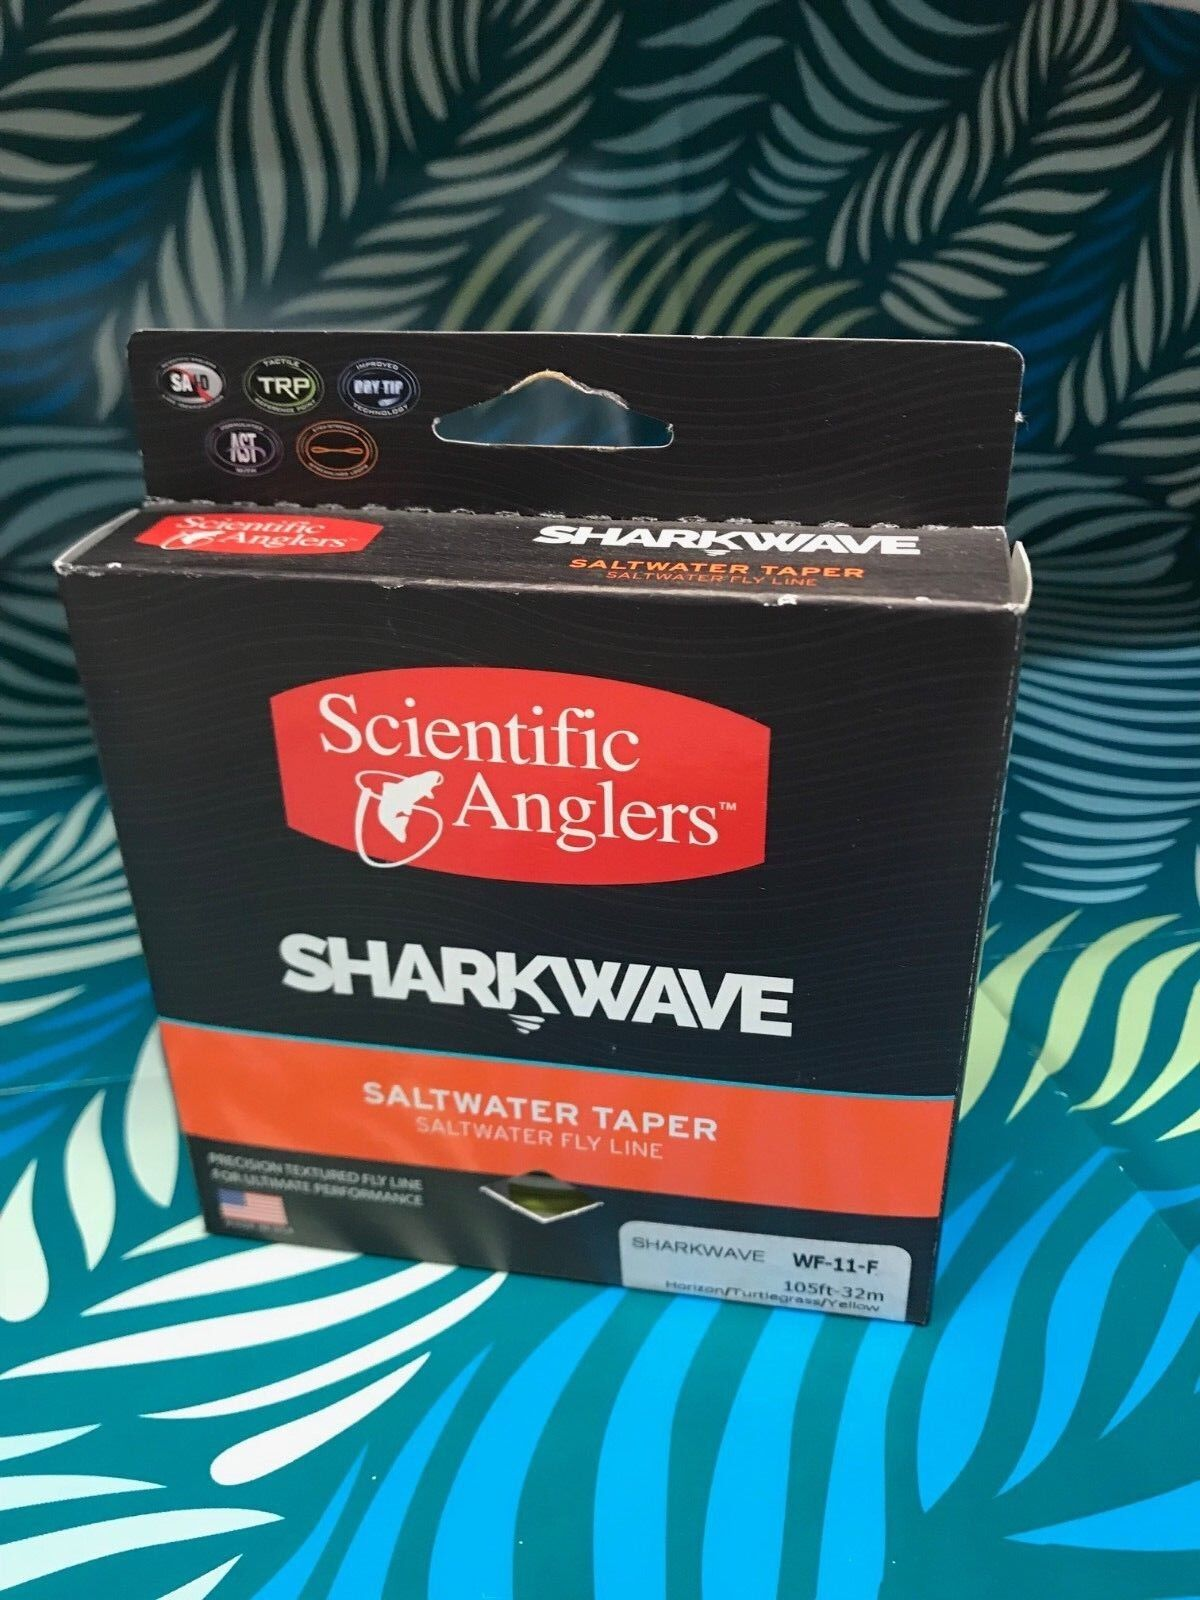 Scientific Angler  - Sharkwave - Saltwater Taper Fly Line - WF-11-F  limit buy